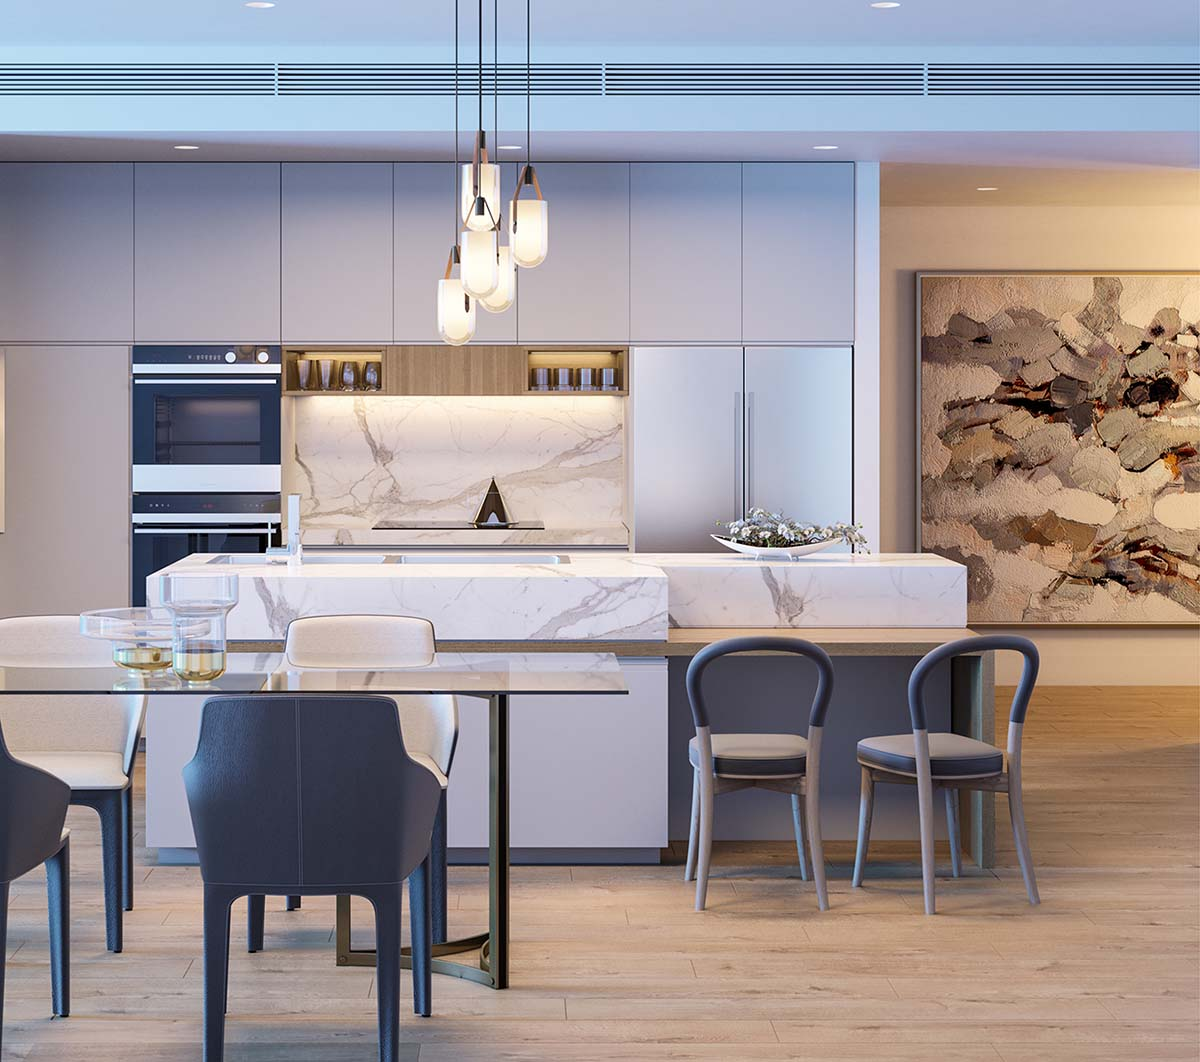 Kitchen and dining area for seniors using a white and blue palette